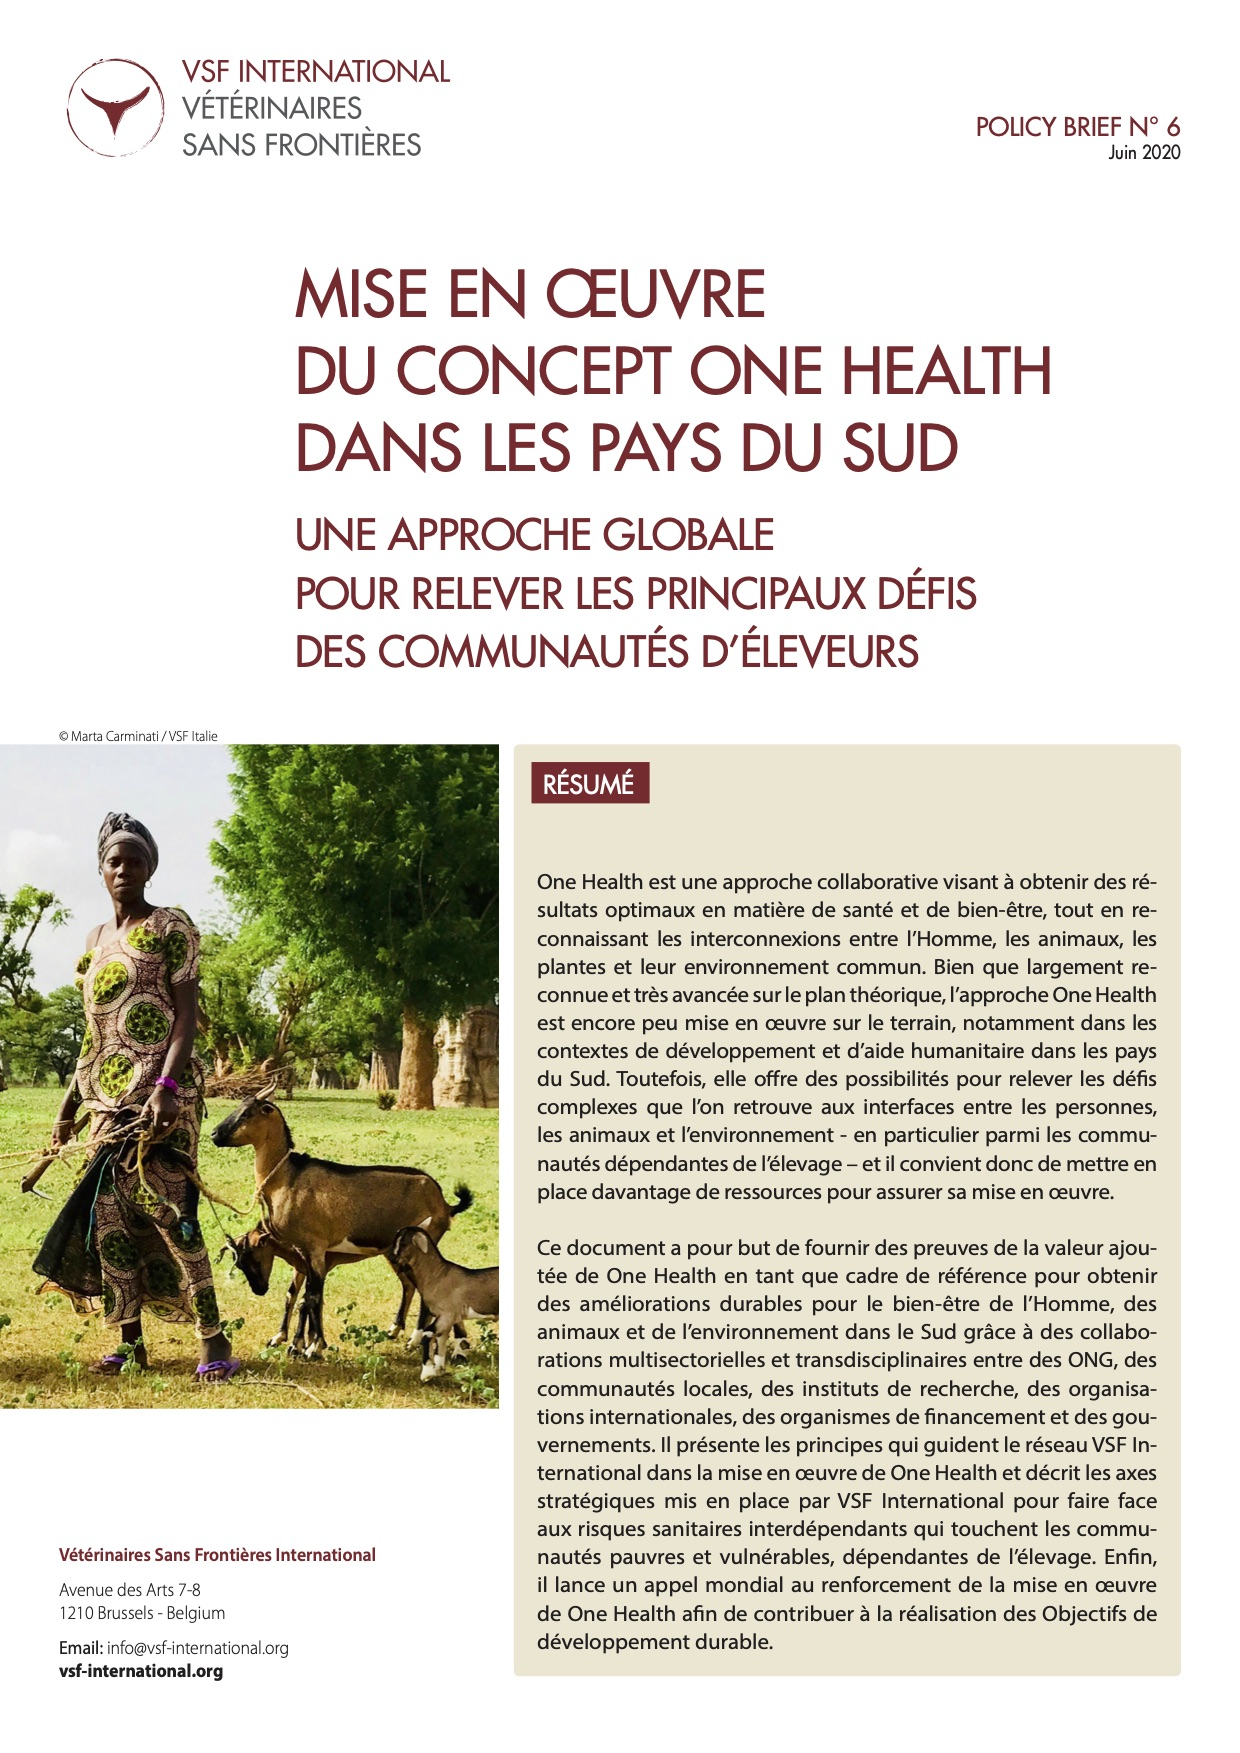 Mise en œuvre du concept One Health dans les pays du Sud : policy brief de VSF-International Image principale